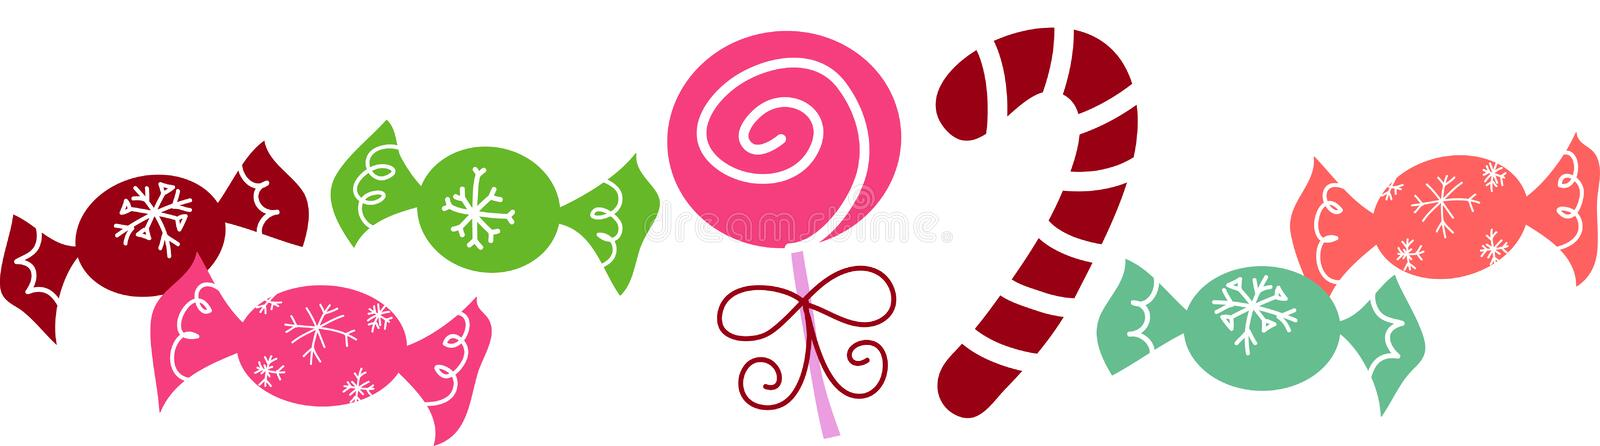 Christmas candies. Contemporary illustration of Christmas candies. Vector image royalty free illustration